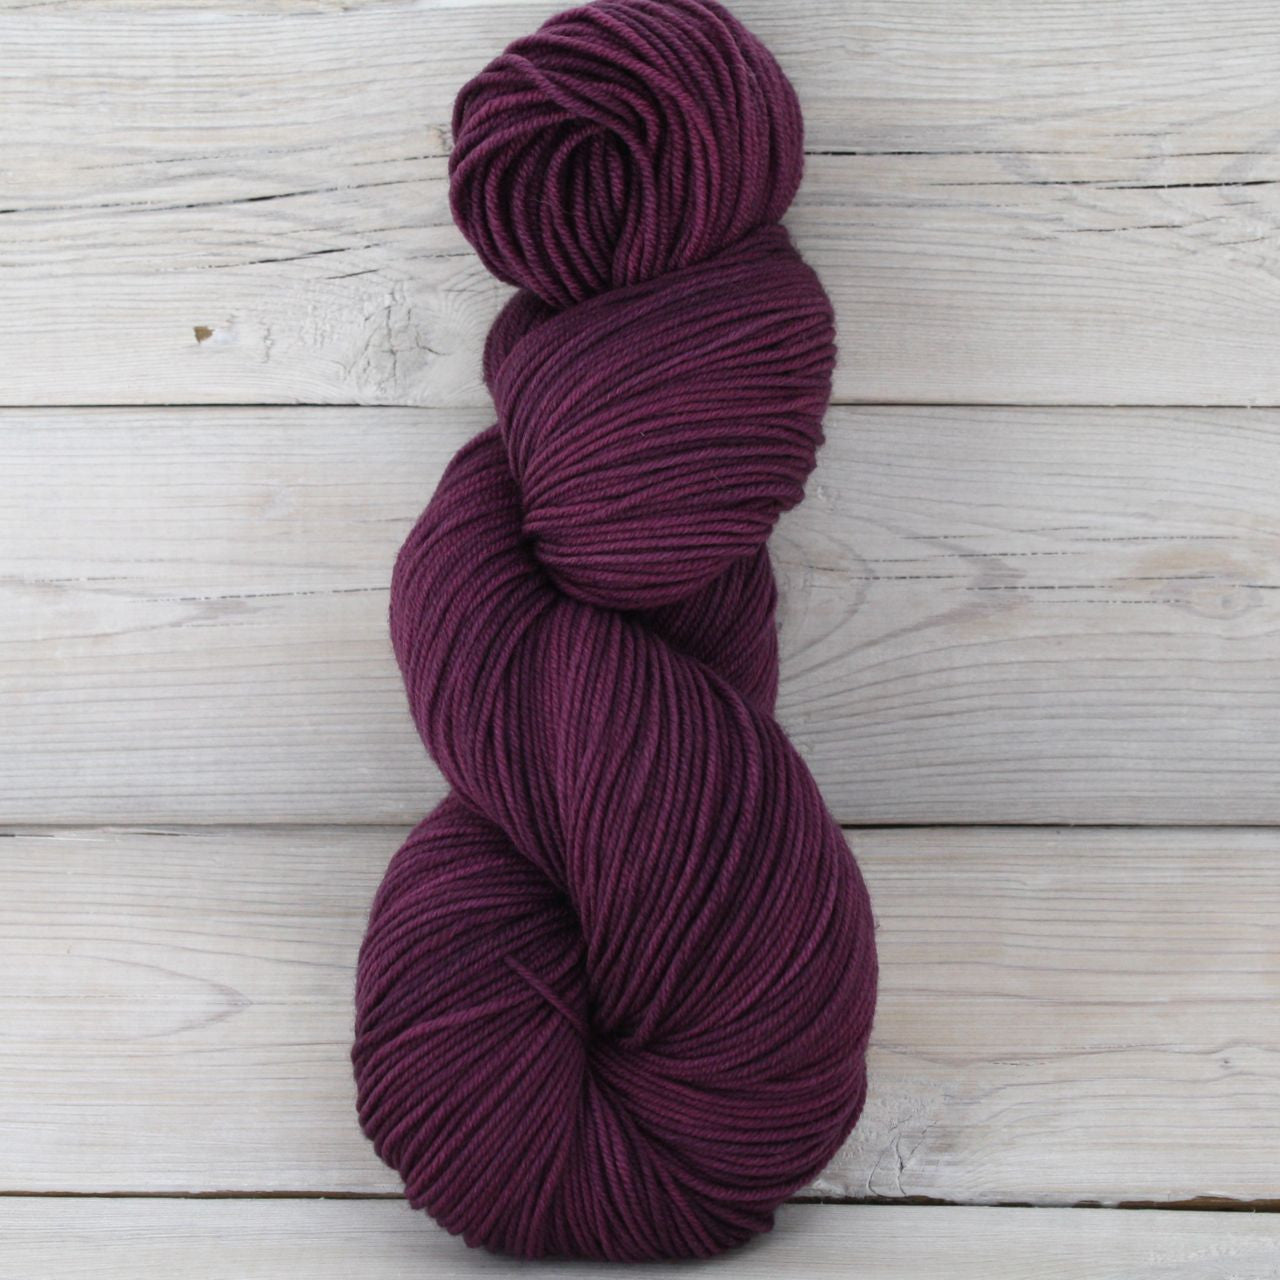 Aspen Sport Yarn | Colorway: Eggplant